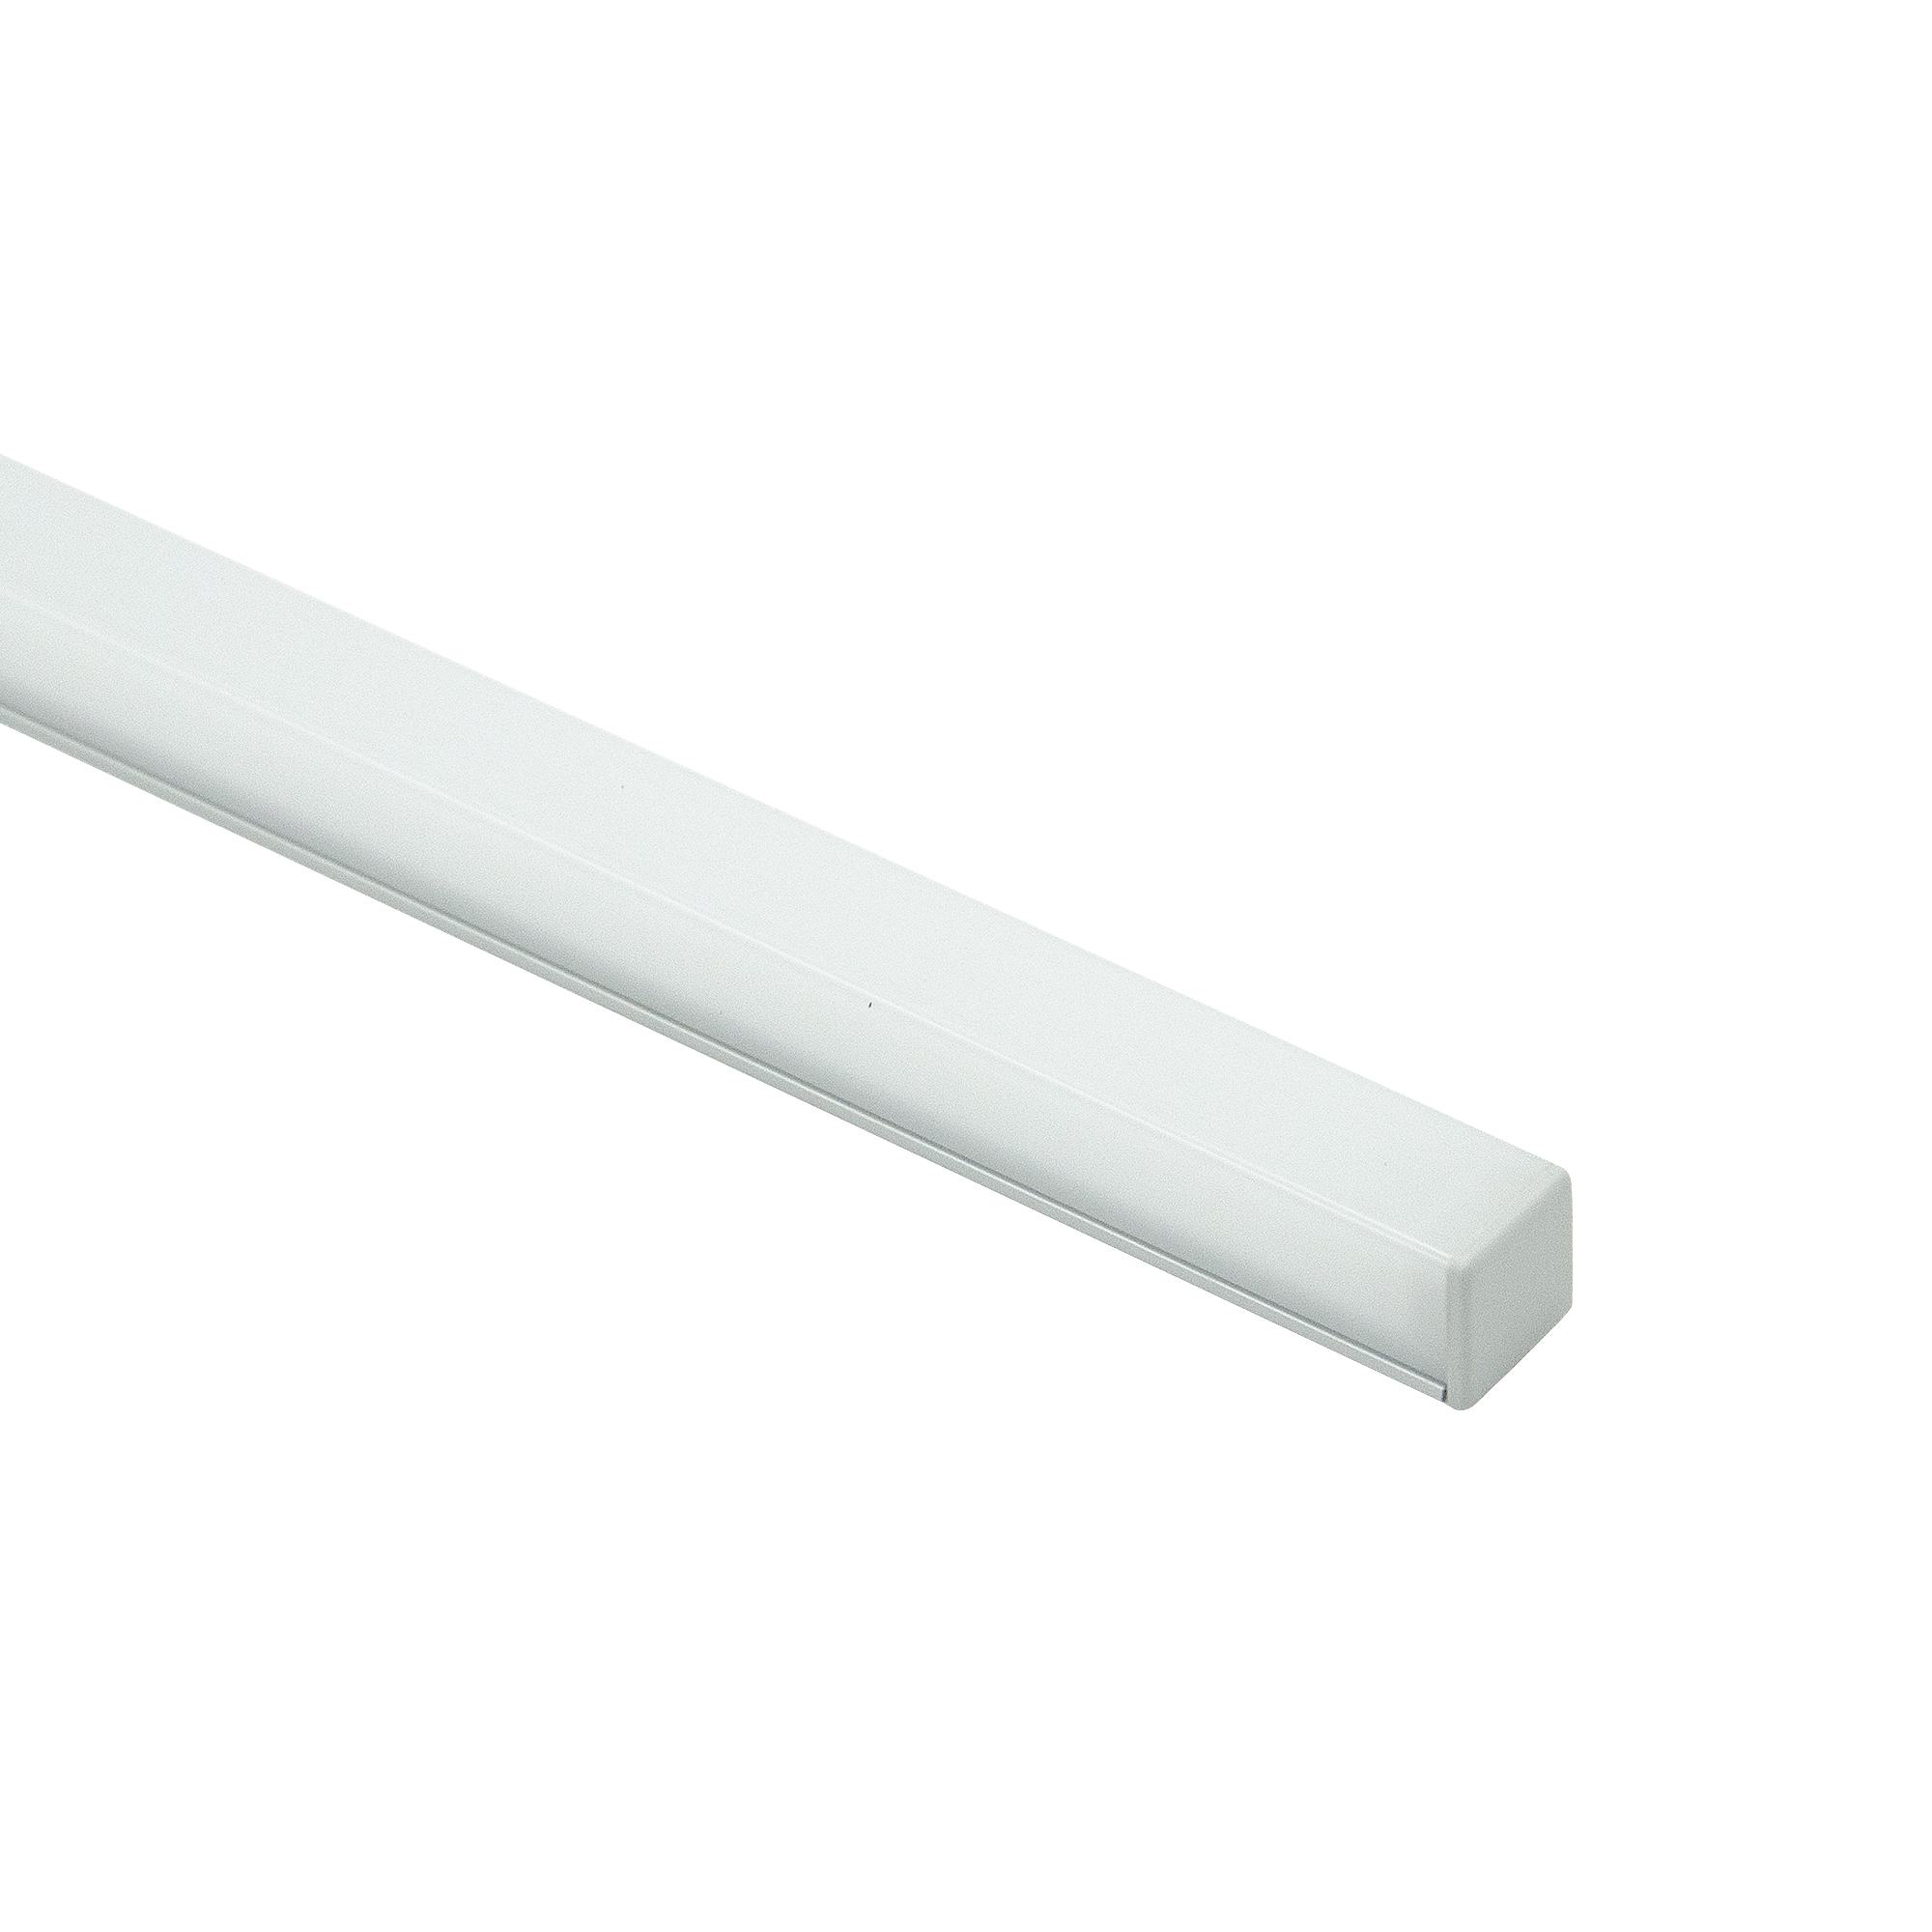 12x12mm square slim aluminum profile for pendant ceiling <strong>led</strong> linear bar <strong>lights</strong> modern suspended ceiling <strong>led</strong> lighting